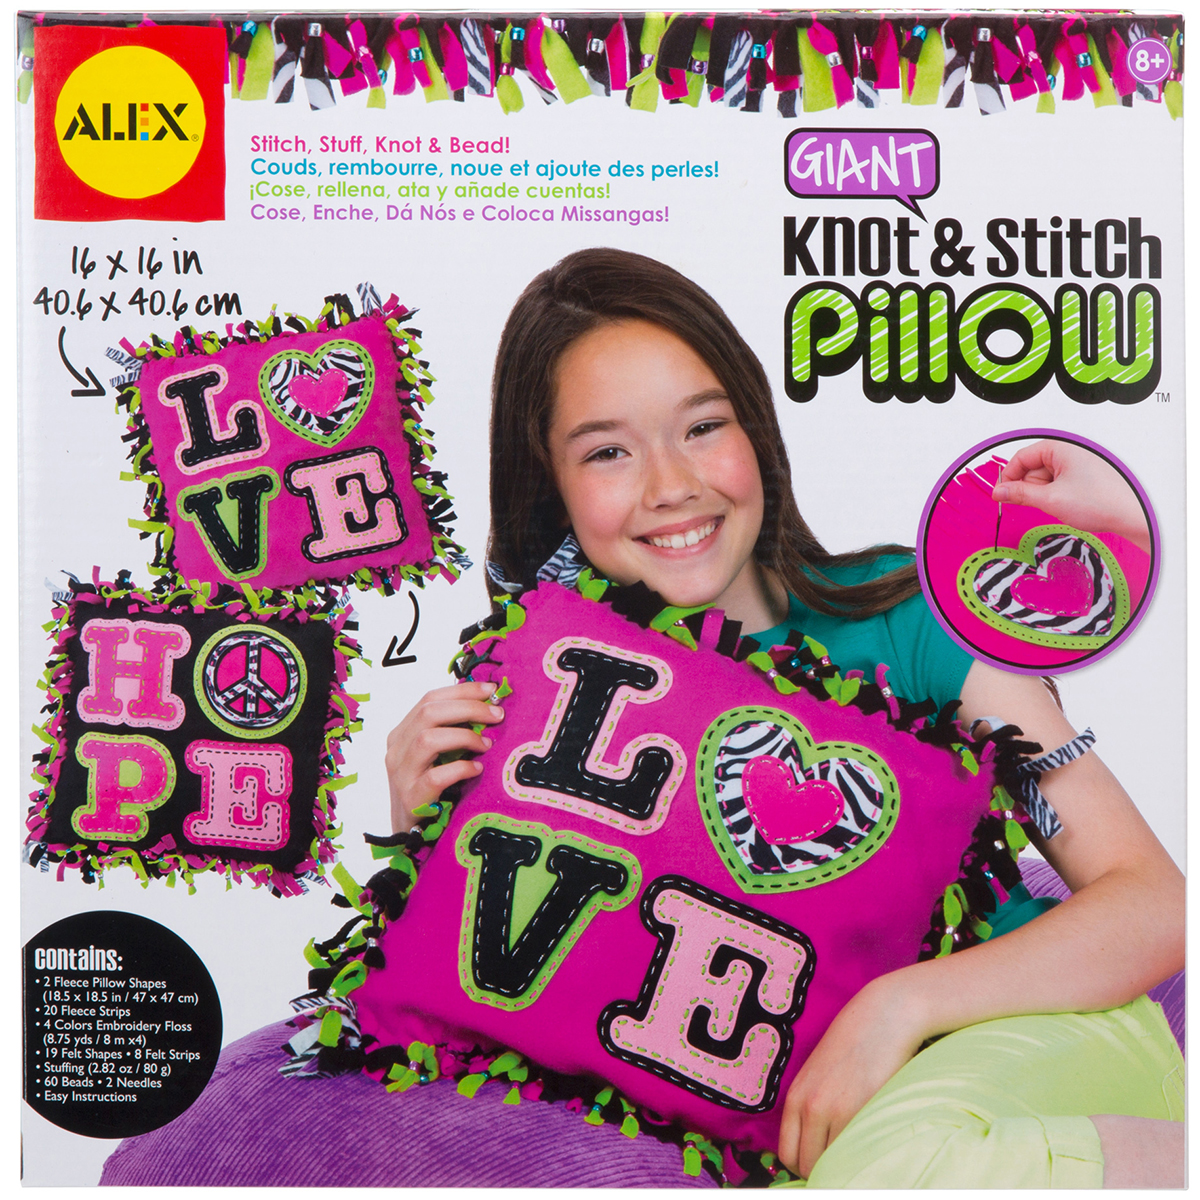 Alex Toys Giant Knot & Stitch Pillow Kit